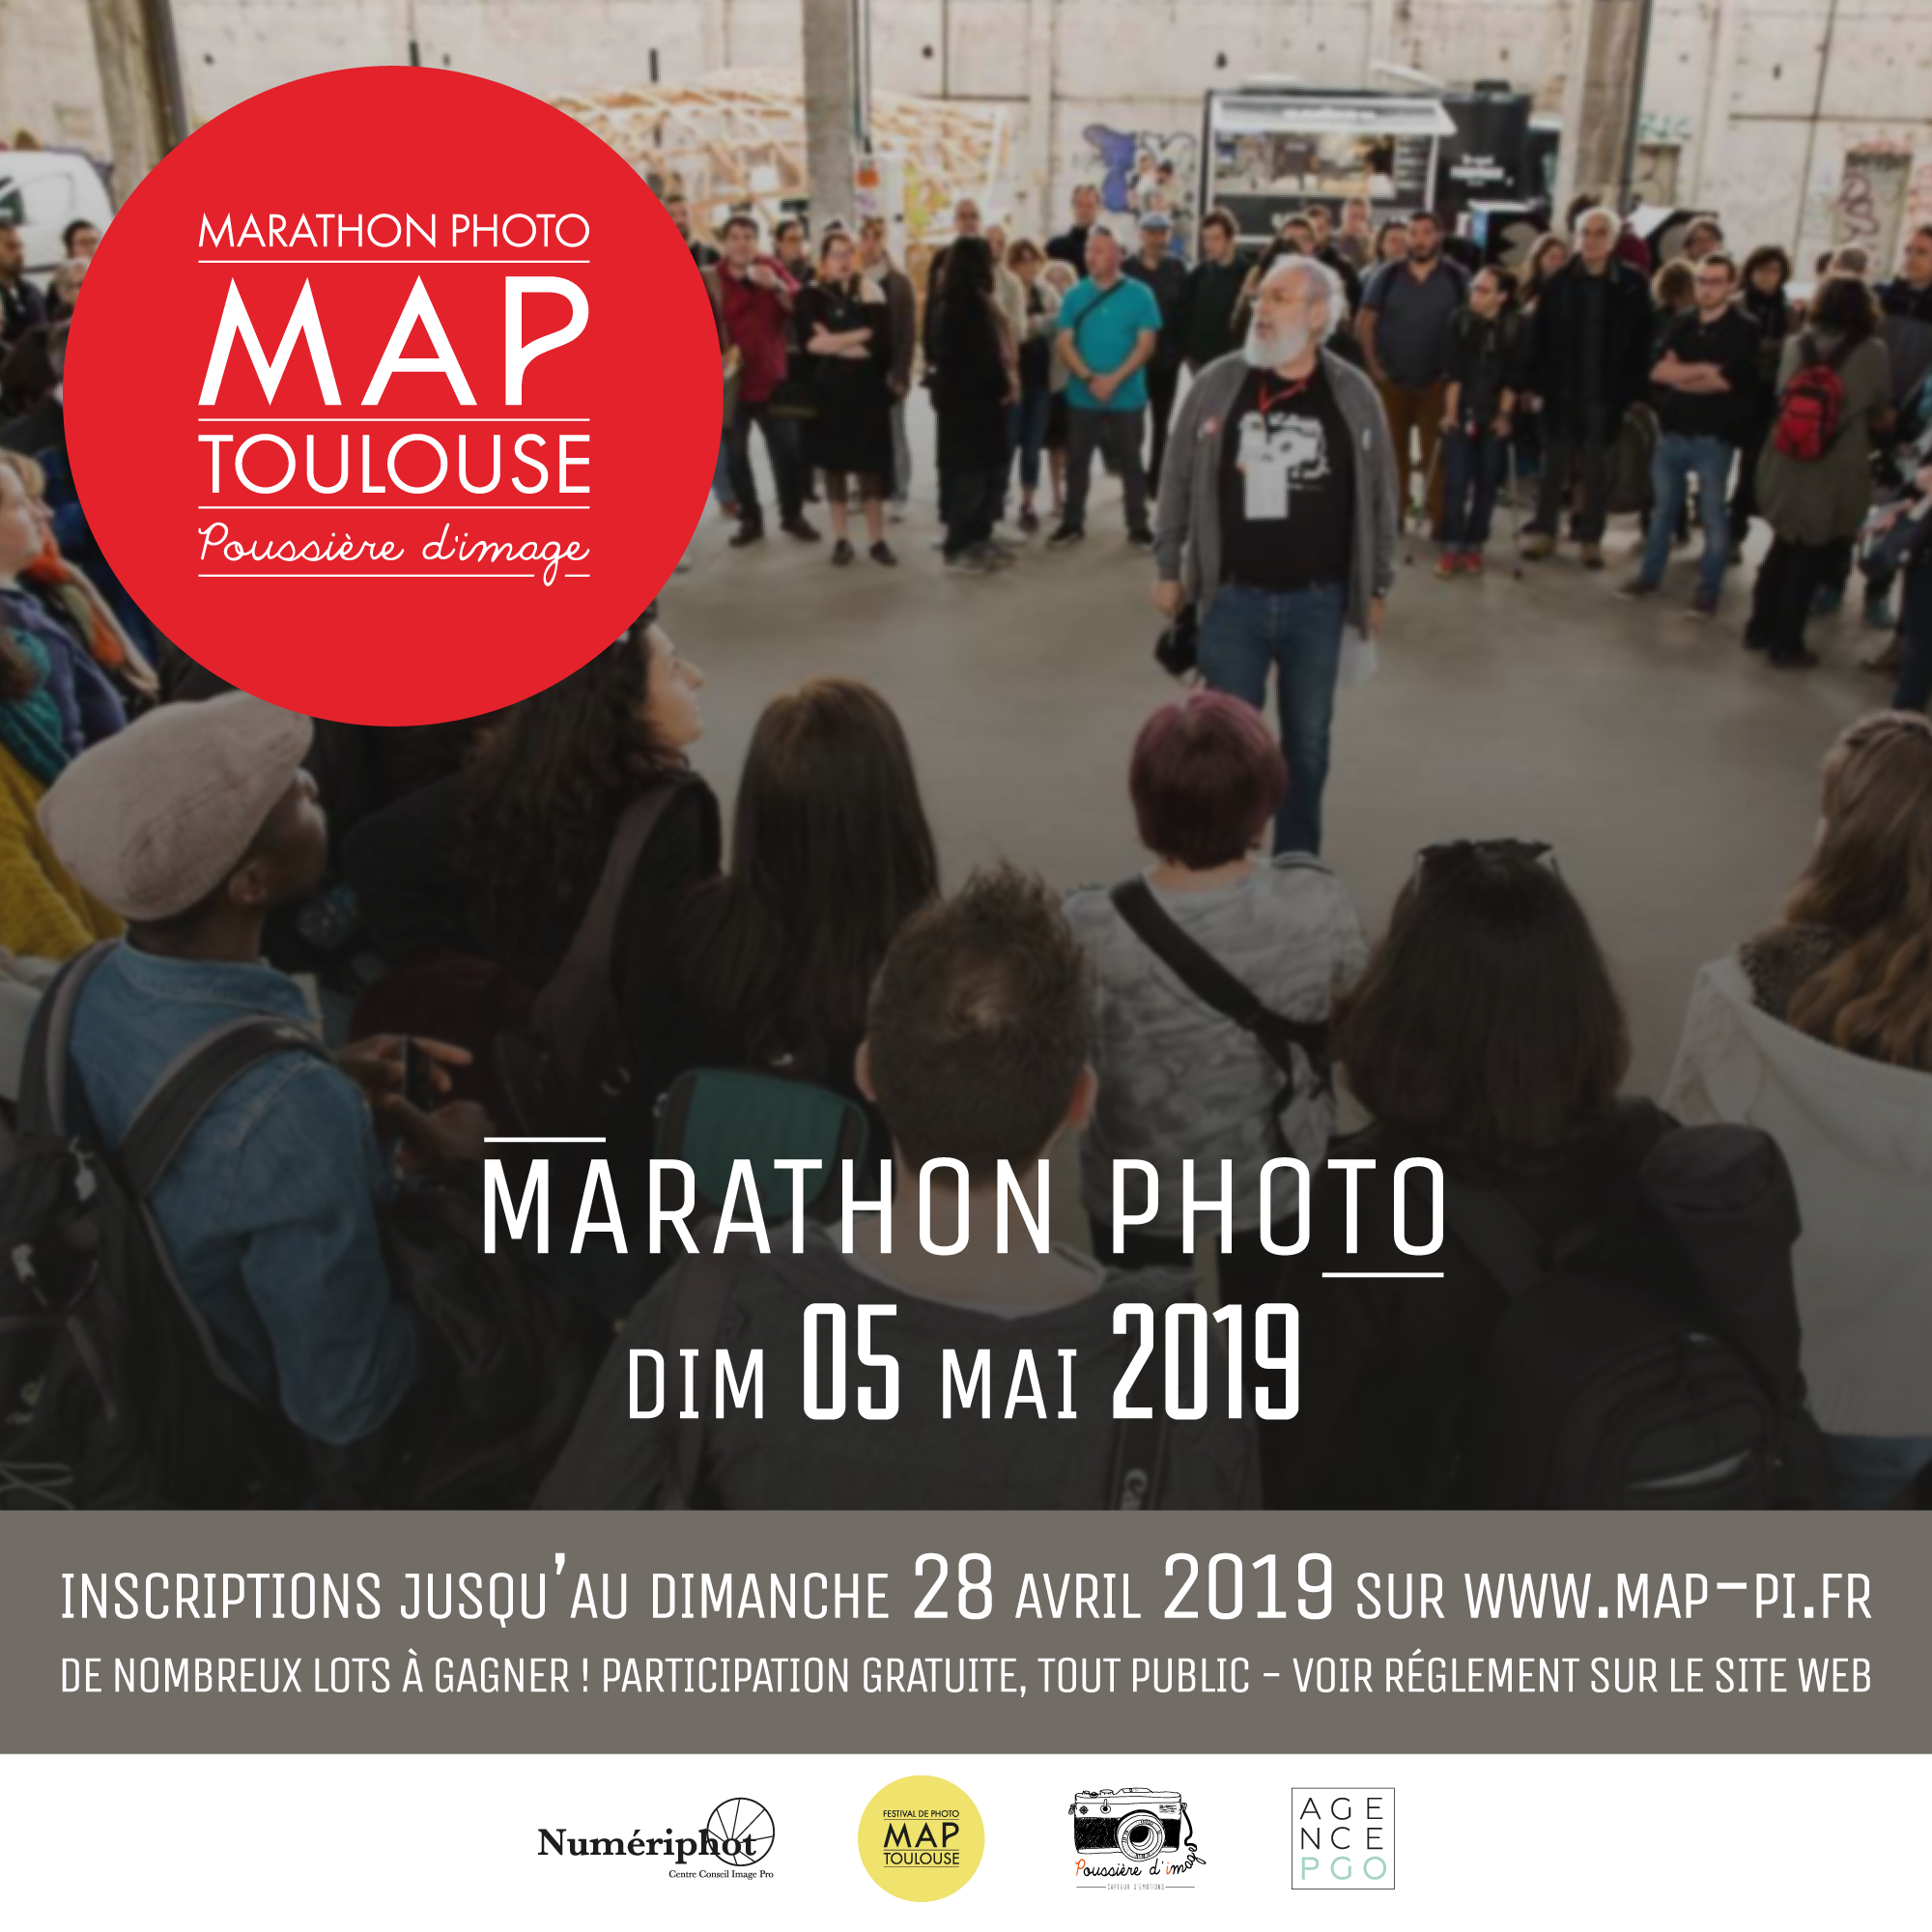 Marathon photo MAP-Poussière d'image 2019